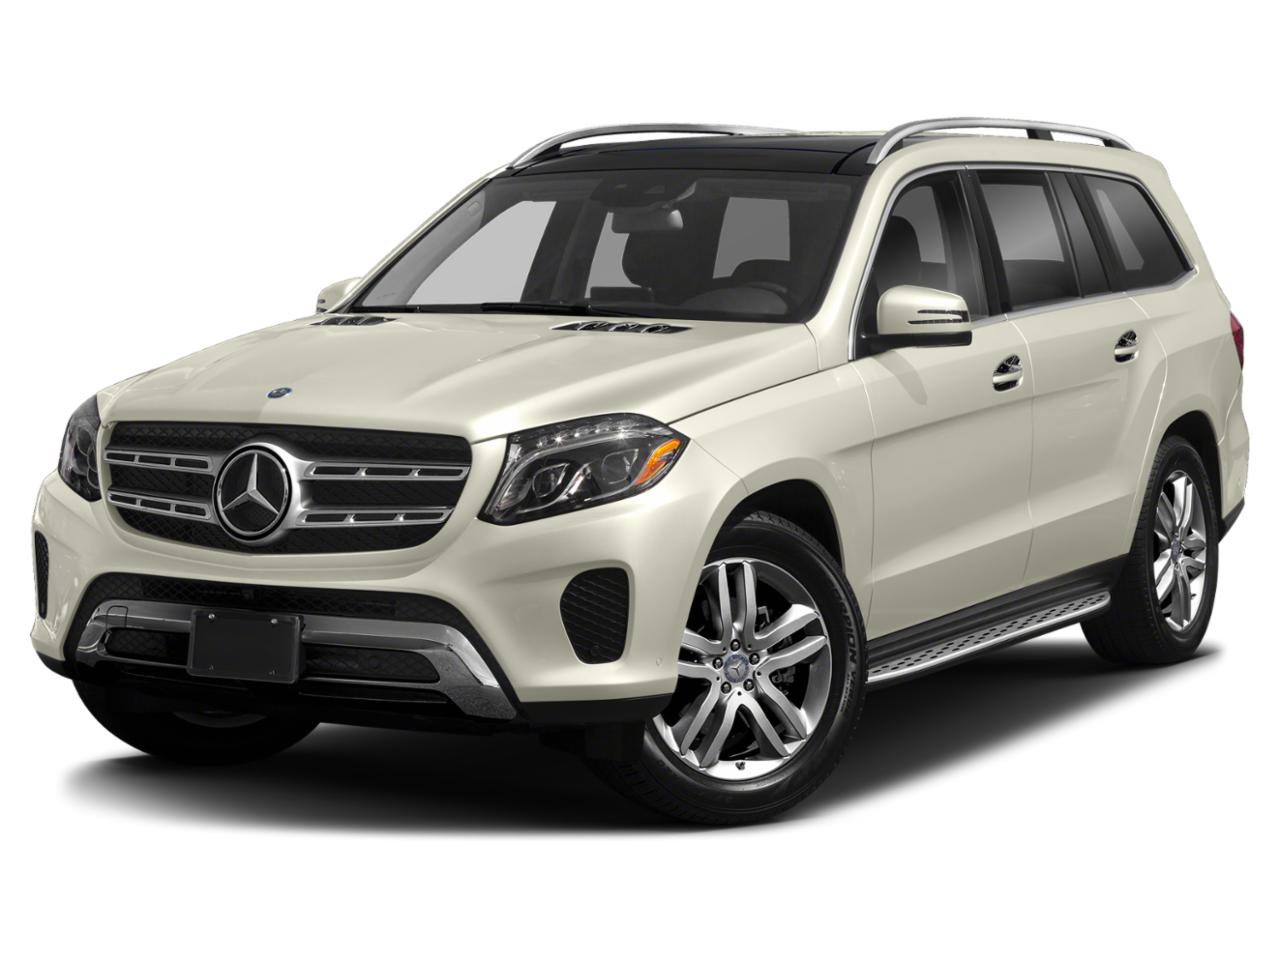 2018 Mercedes-Benz GLS Vehicle Photo in State College, PA 16801